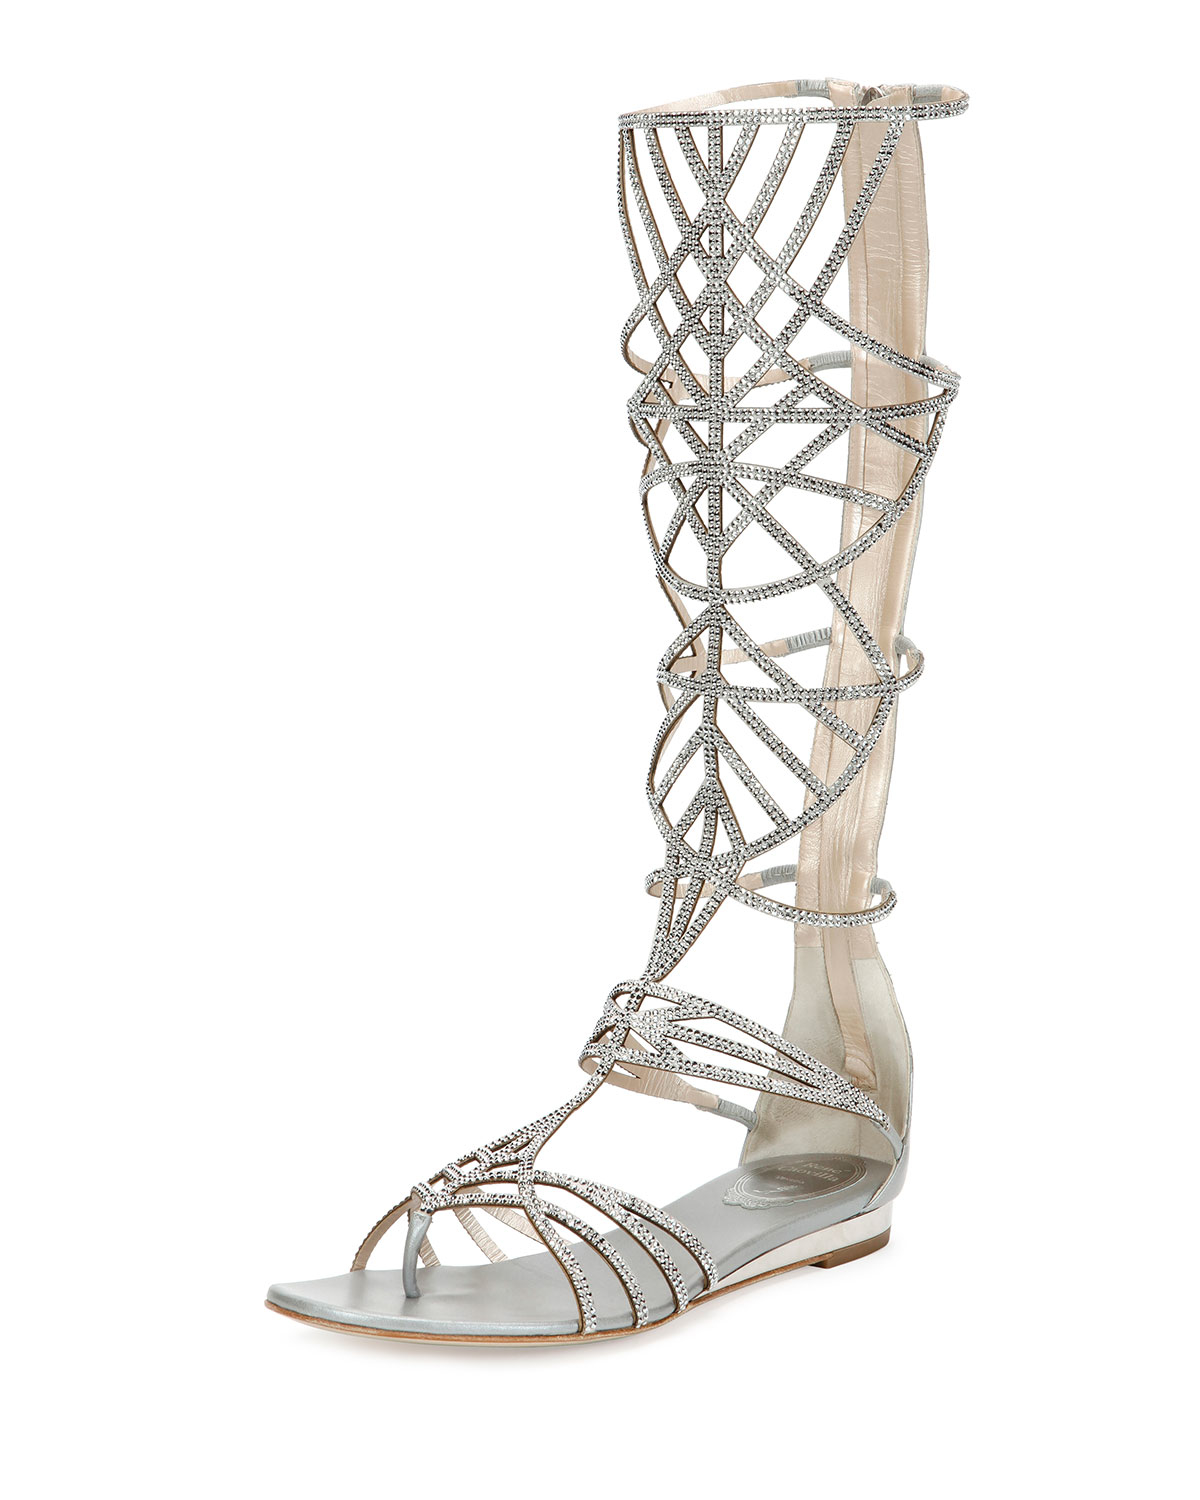 3554a6315dc065 Lyst - Rene Caovilla Crystal-Embellished Gladiator Sandals in Metallic